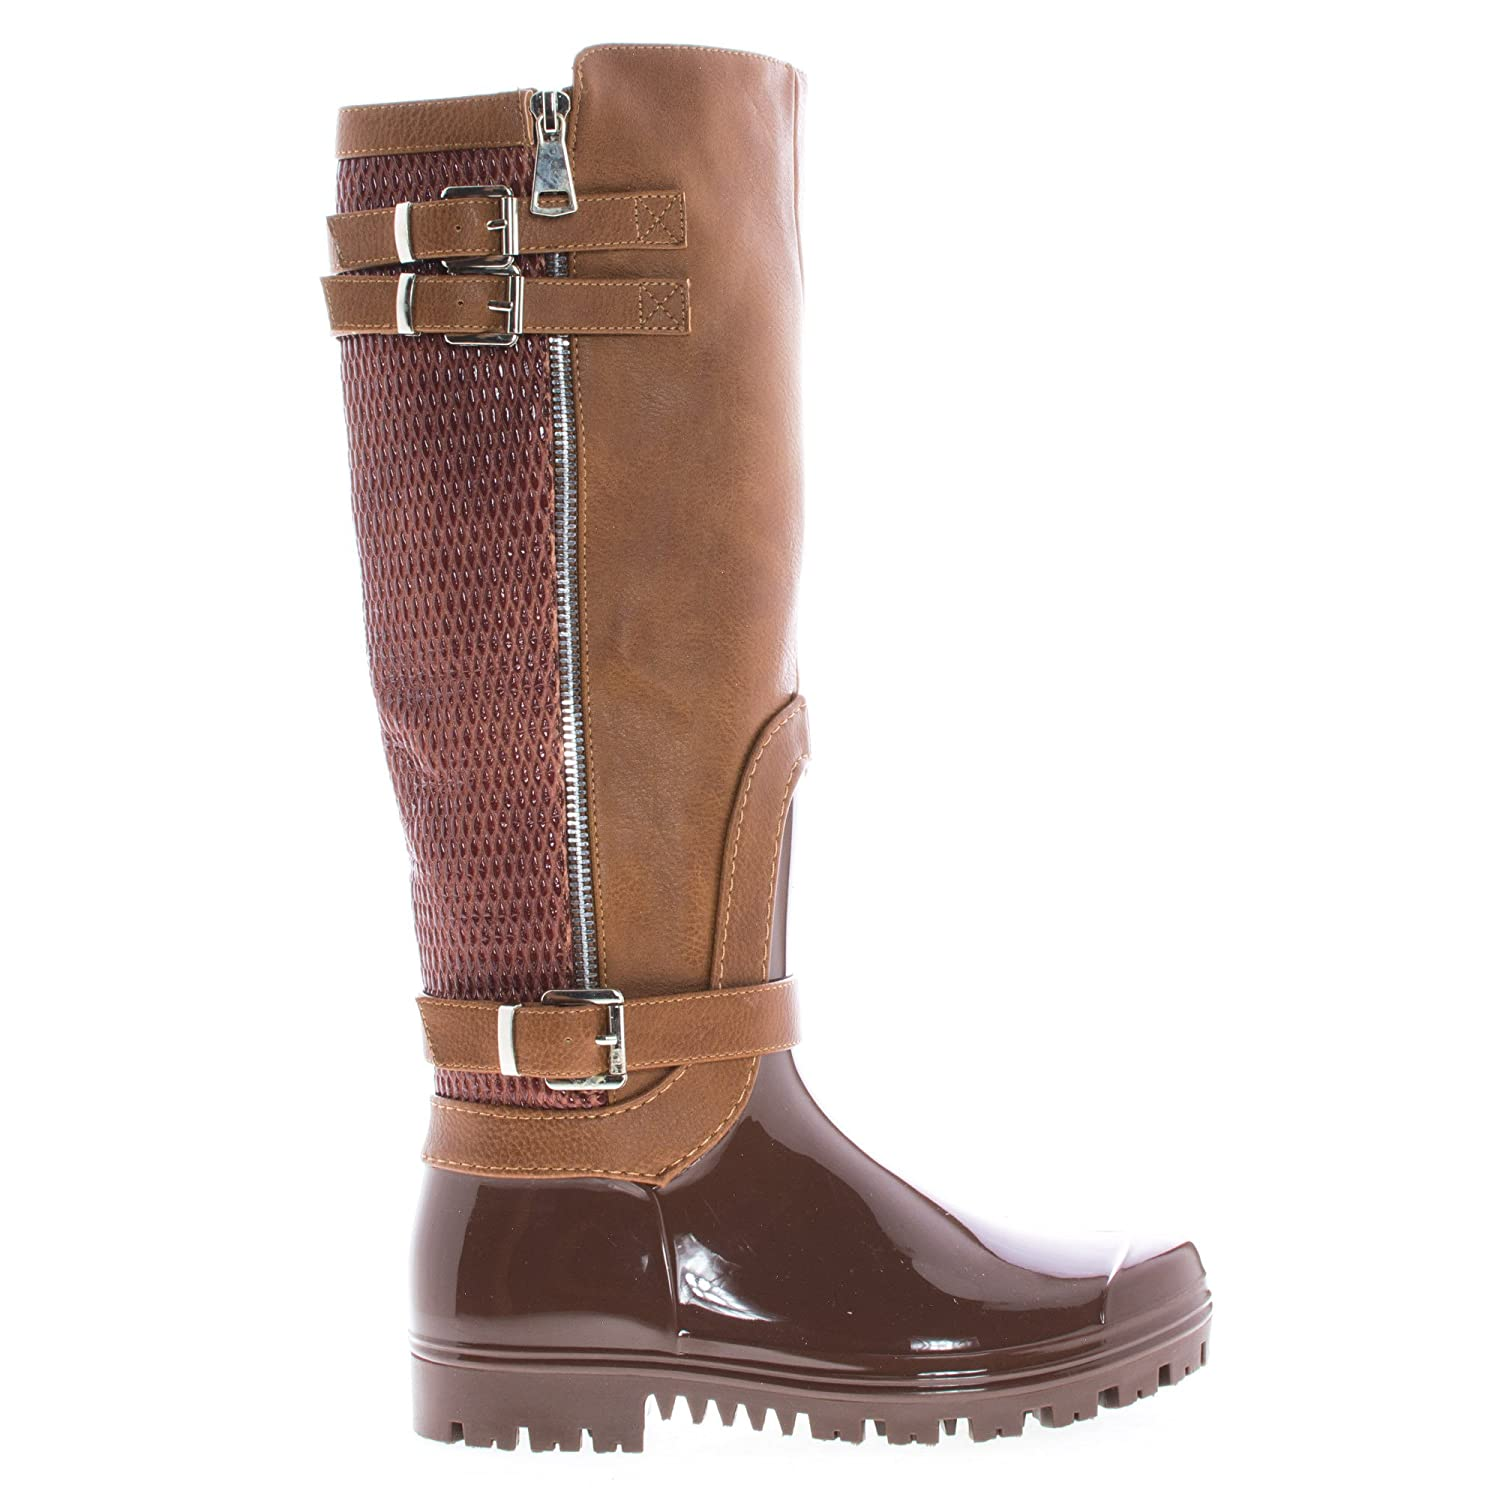 Sullys Knee High Round Toe Strappy Textured Rain Boots